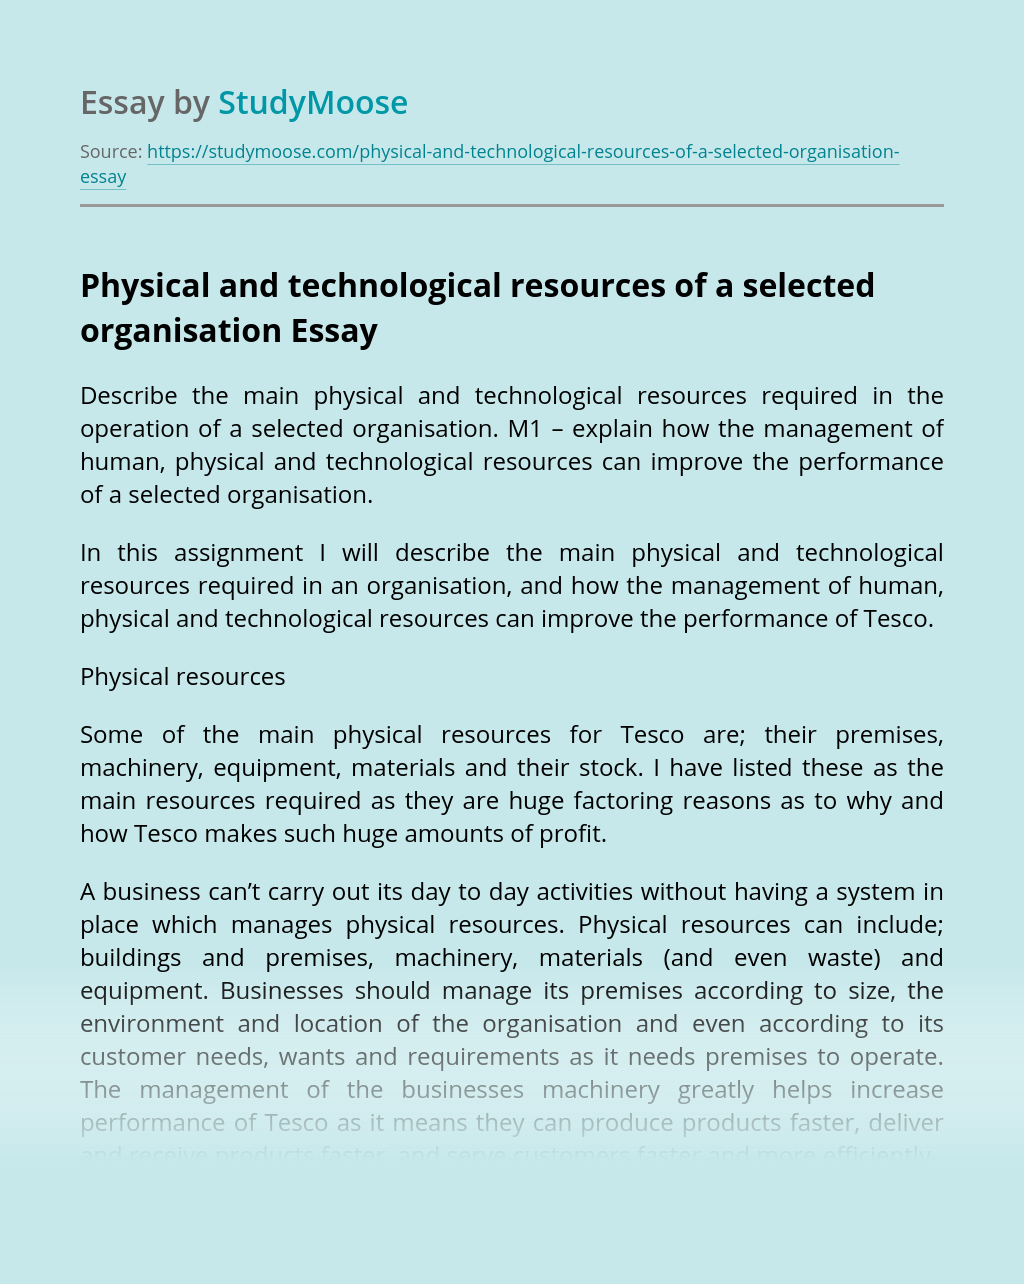 Physical and technological resources of a selected organisation